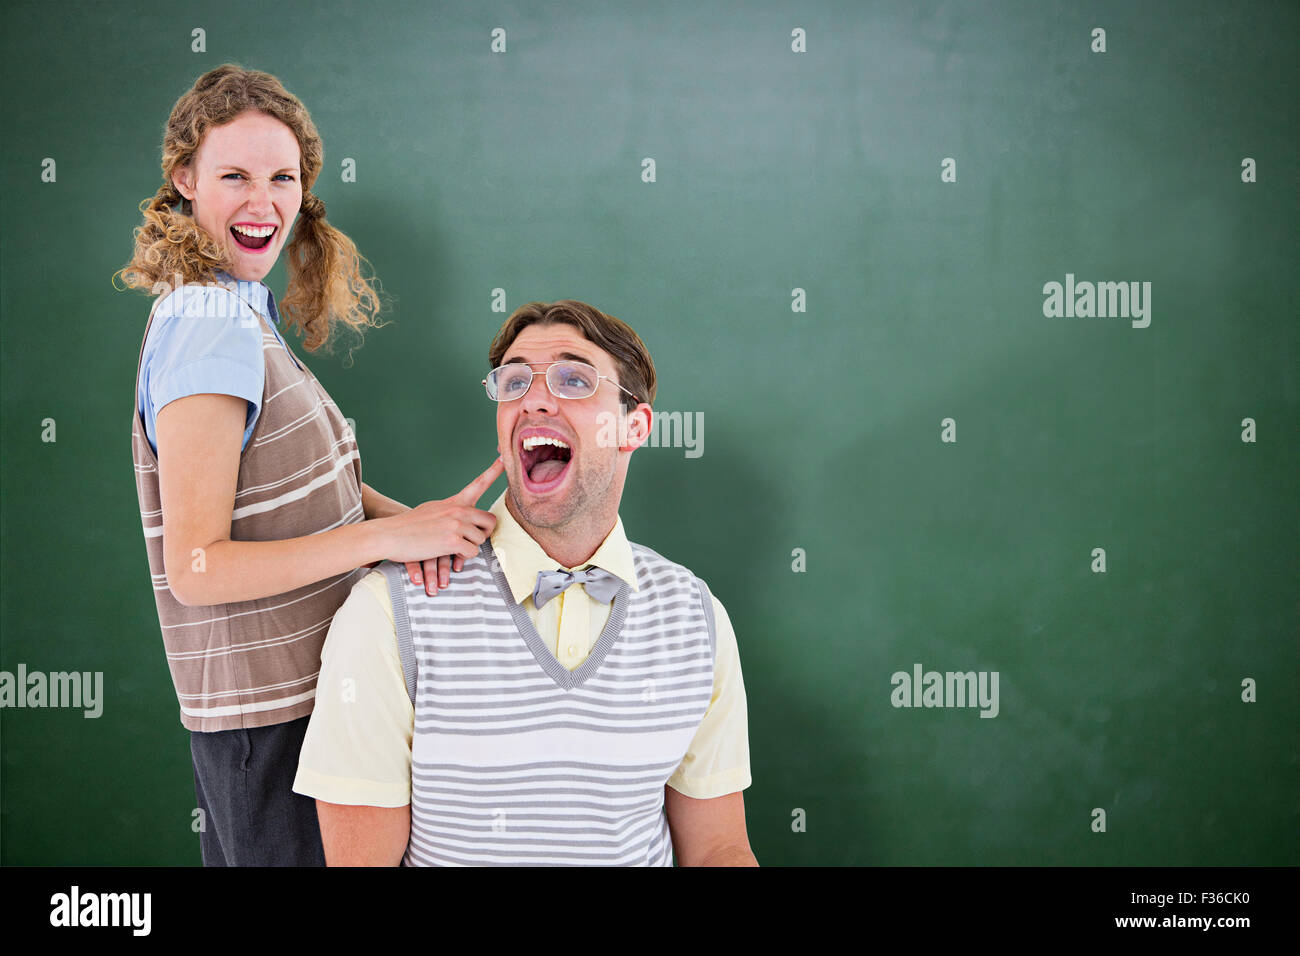 Composite image of excited geeky hipster couple - Stock Image